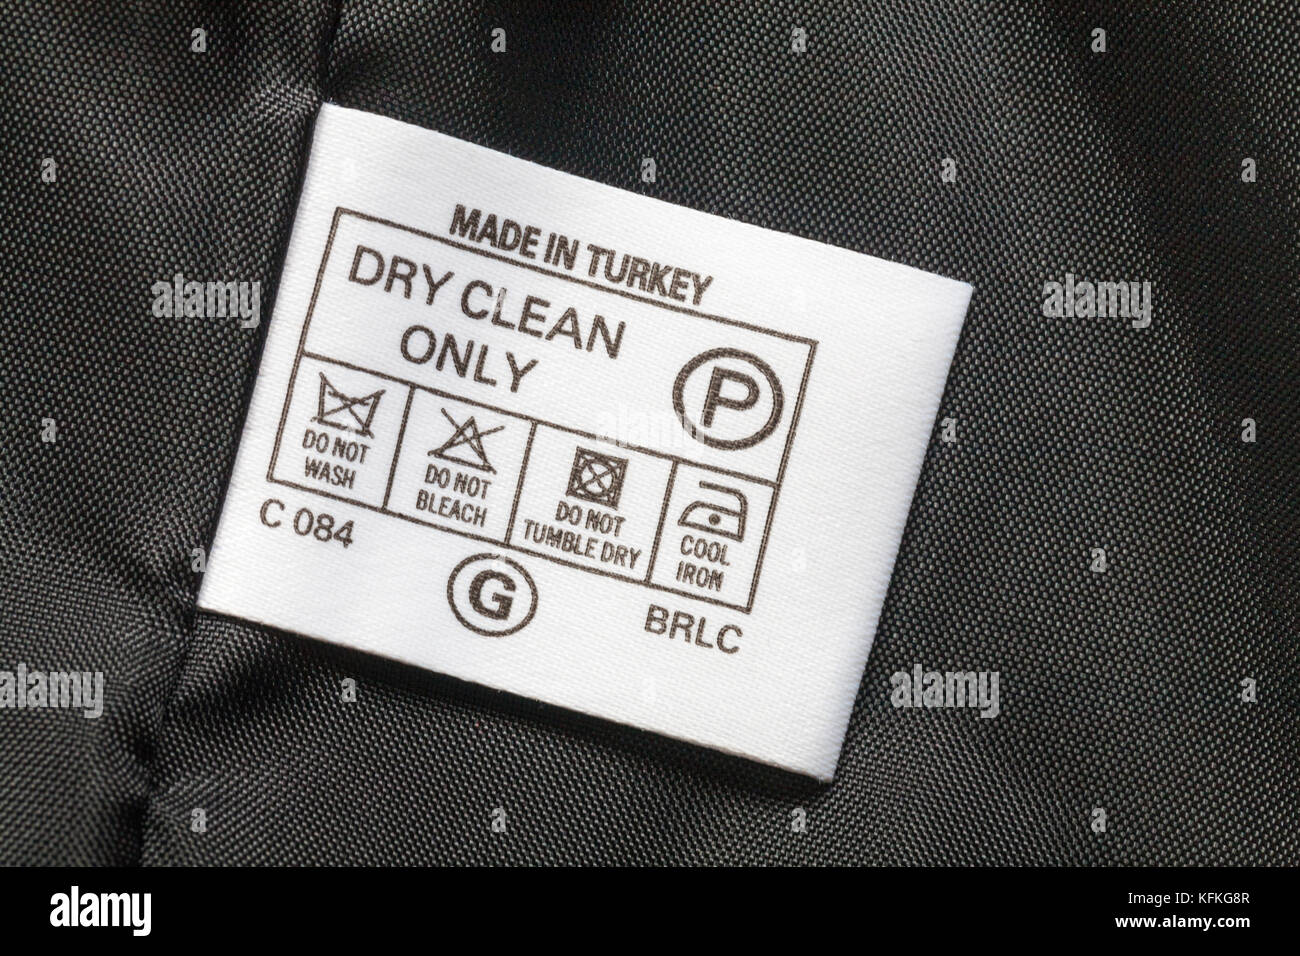 Washing symbols stock photos washing symbols stock images alamy washing care symbols dry clean only label in womans jacket made in turkey sold in biocorpaavc Choice Image